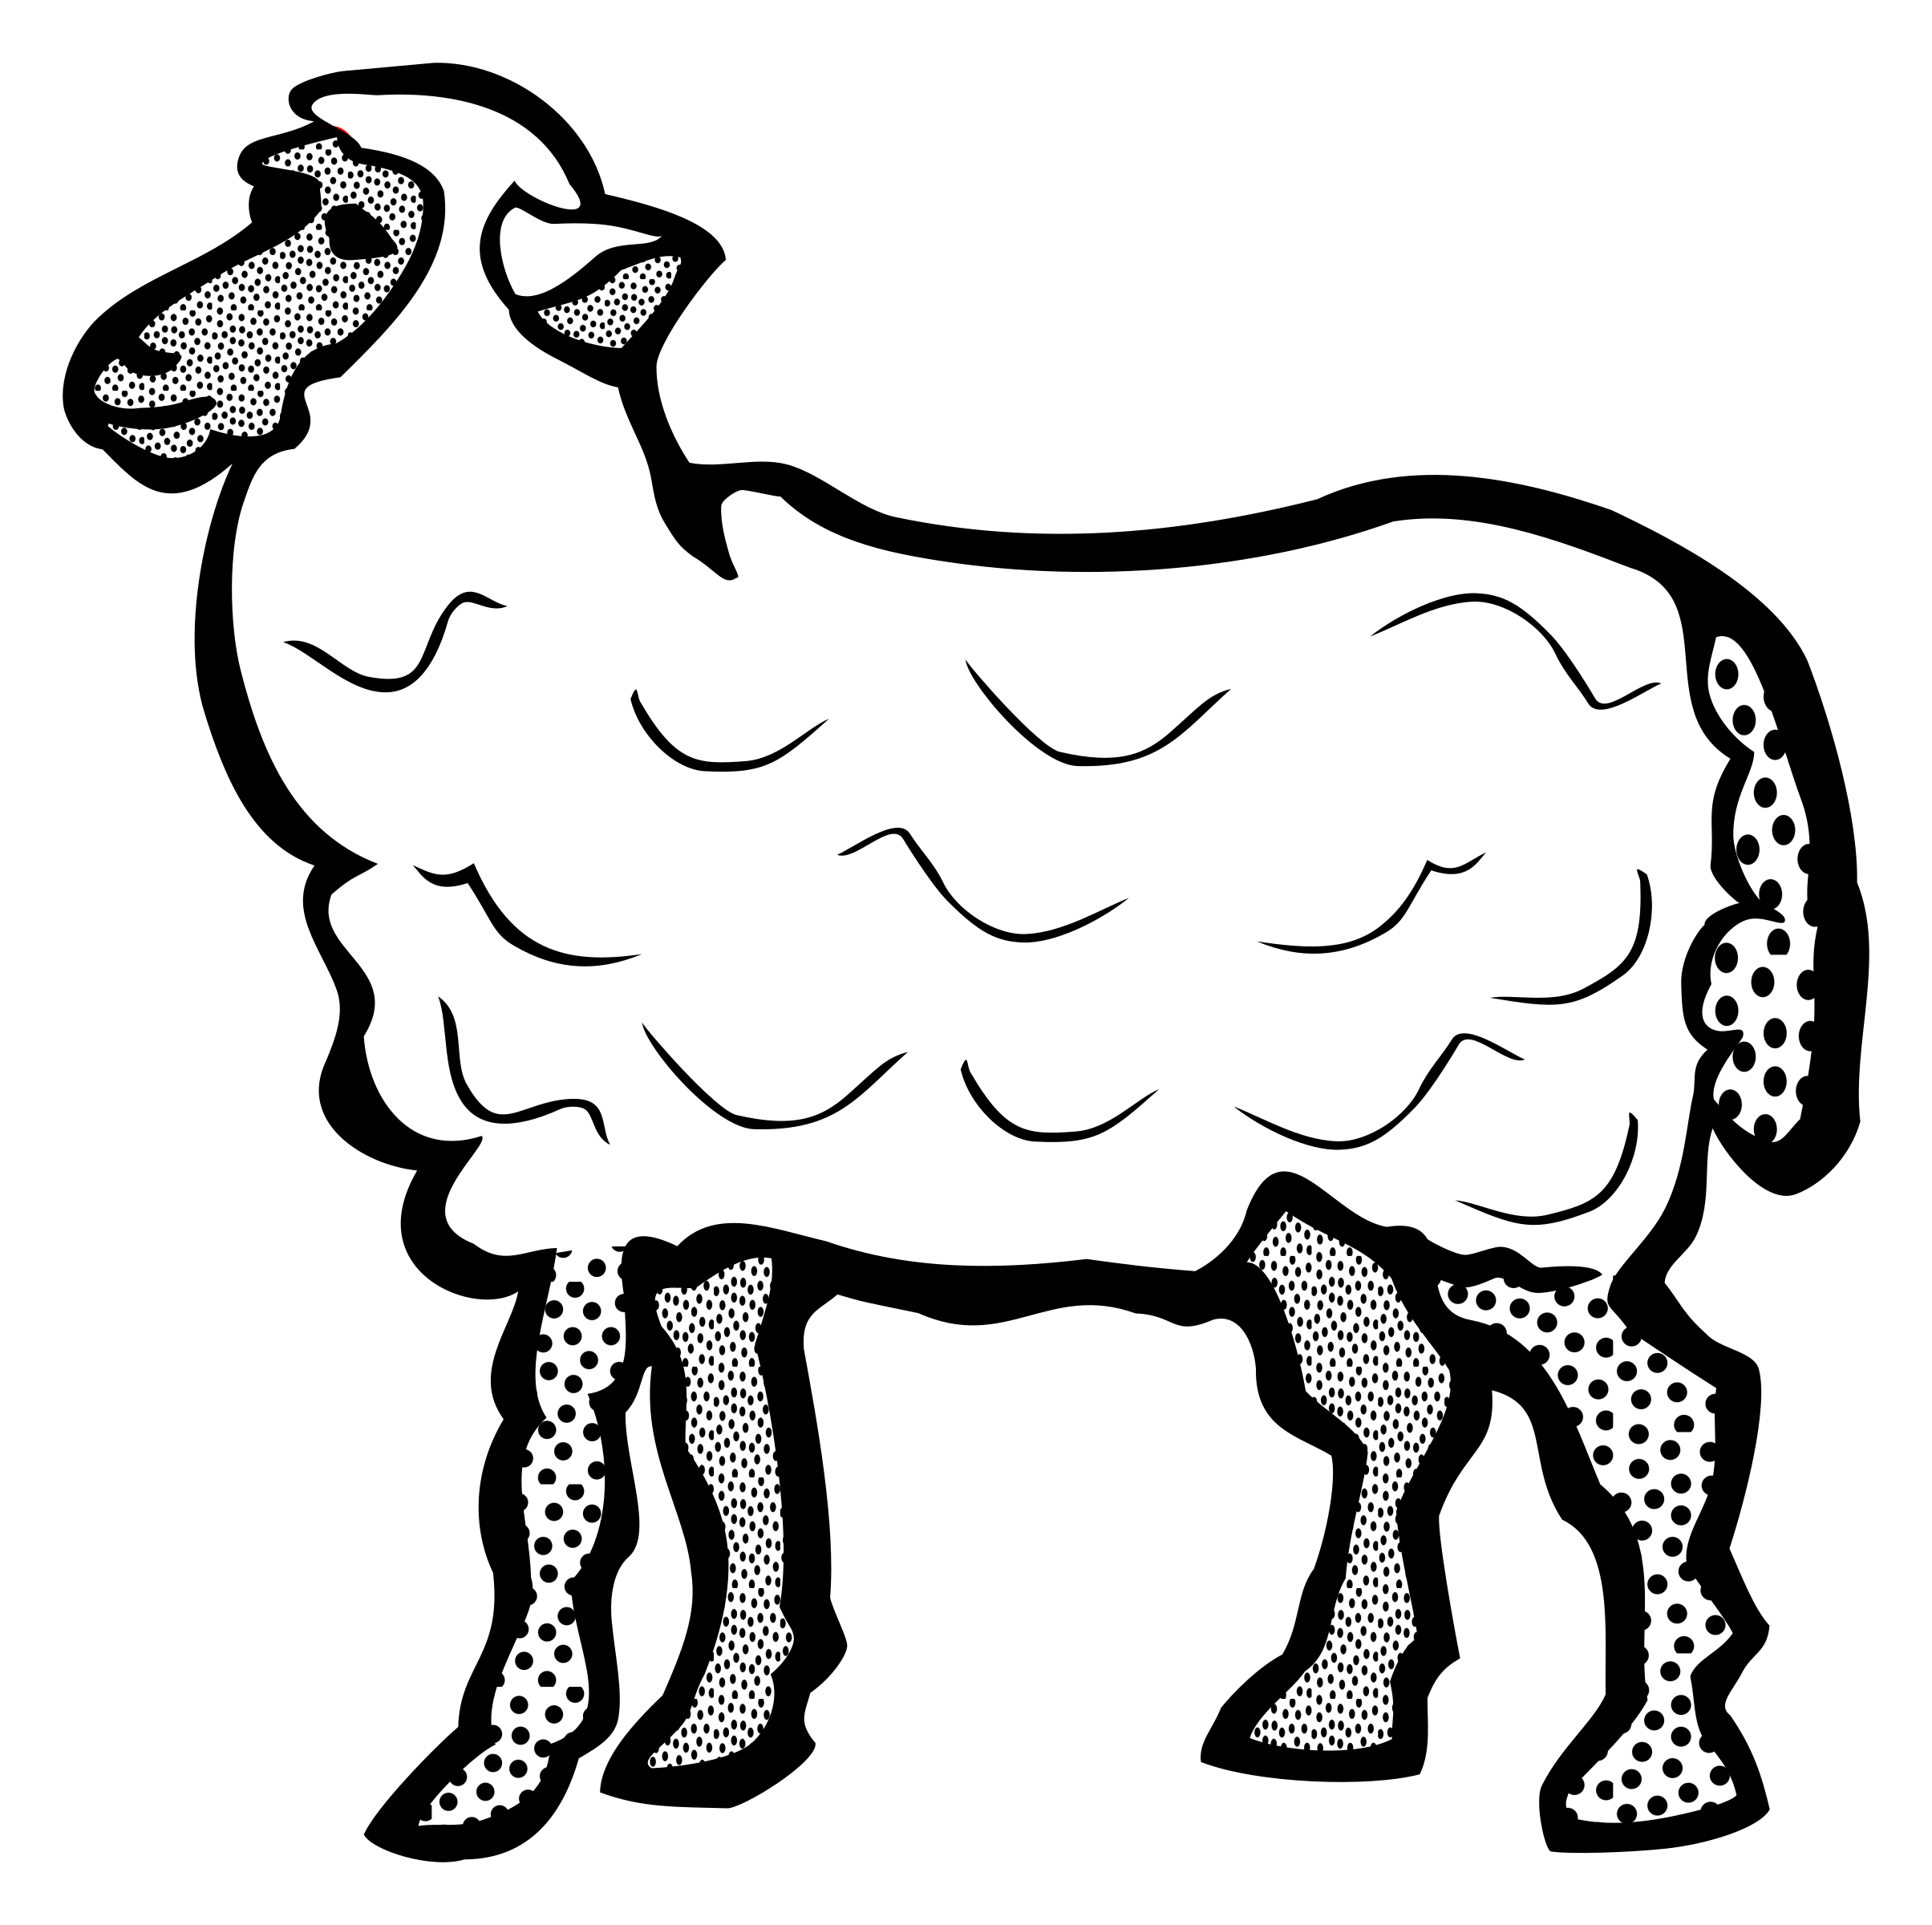 Lineart big image png. Sheep clipart family